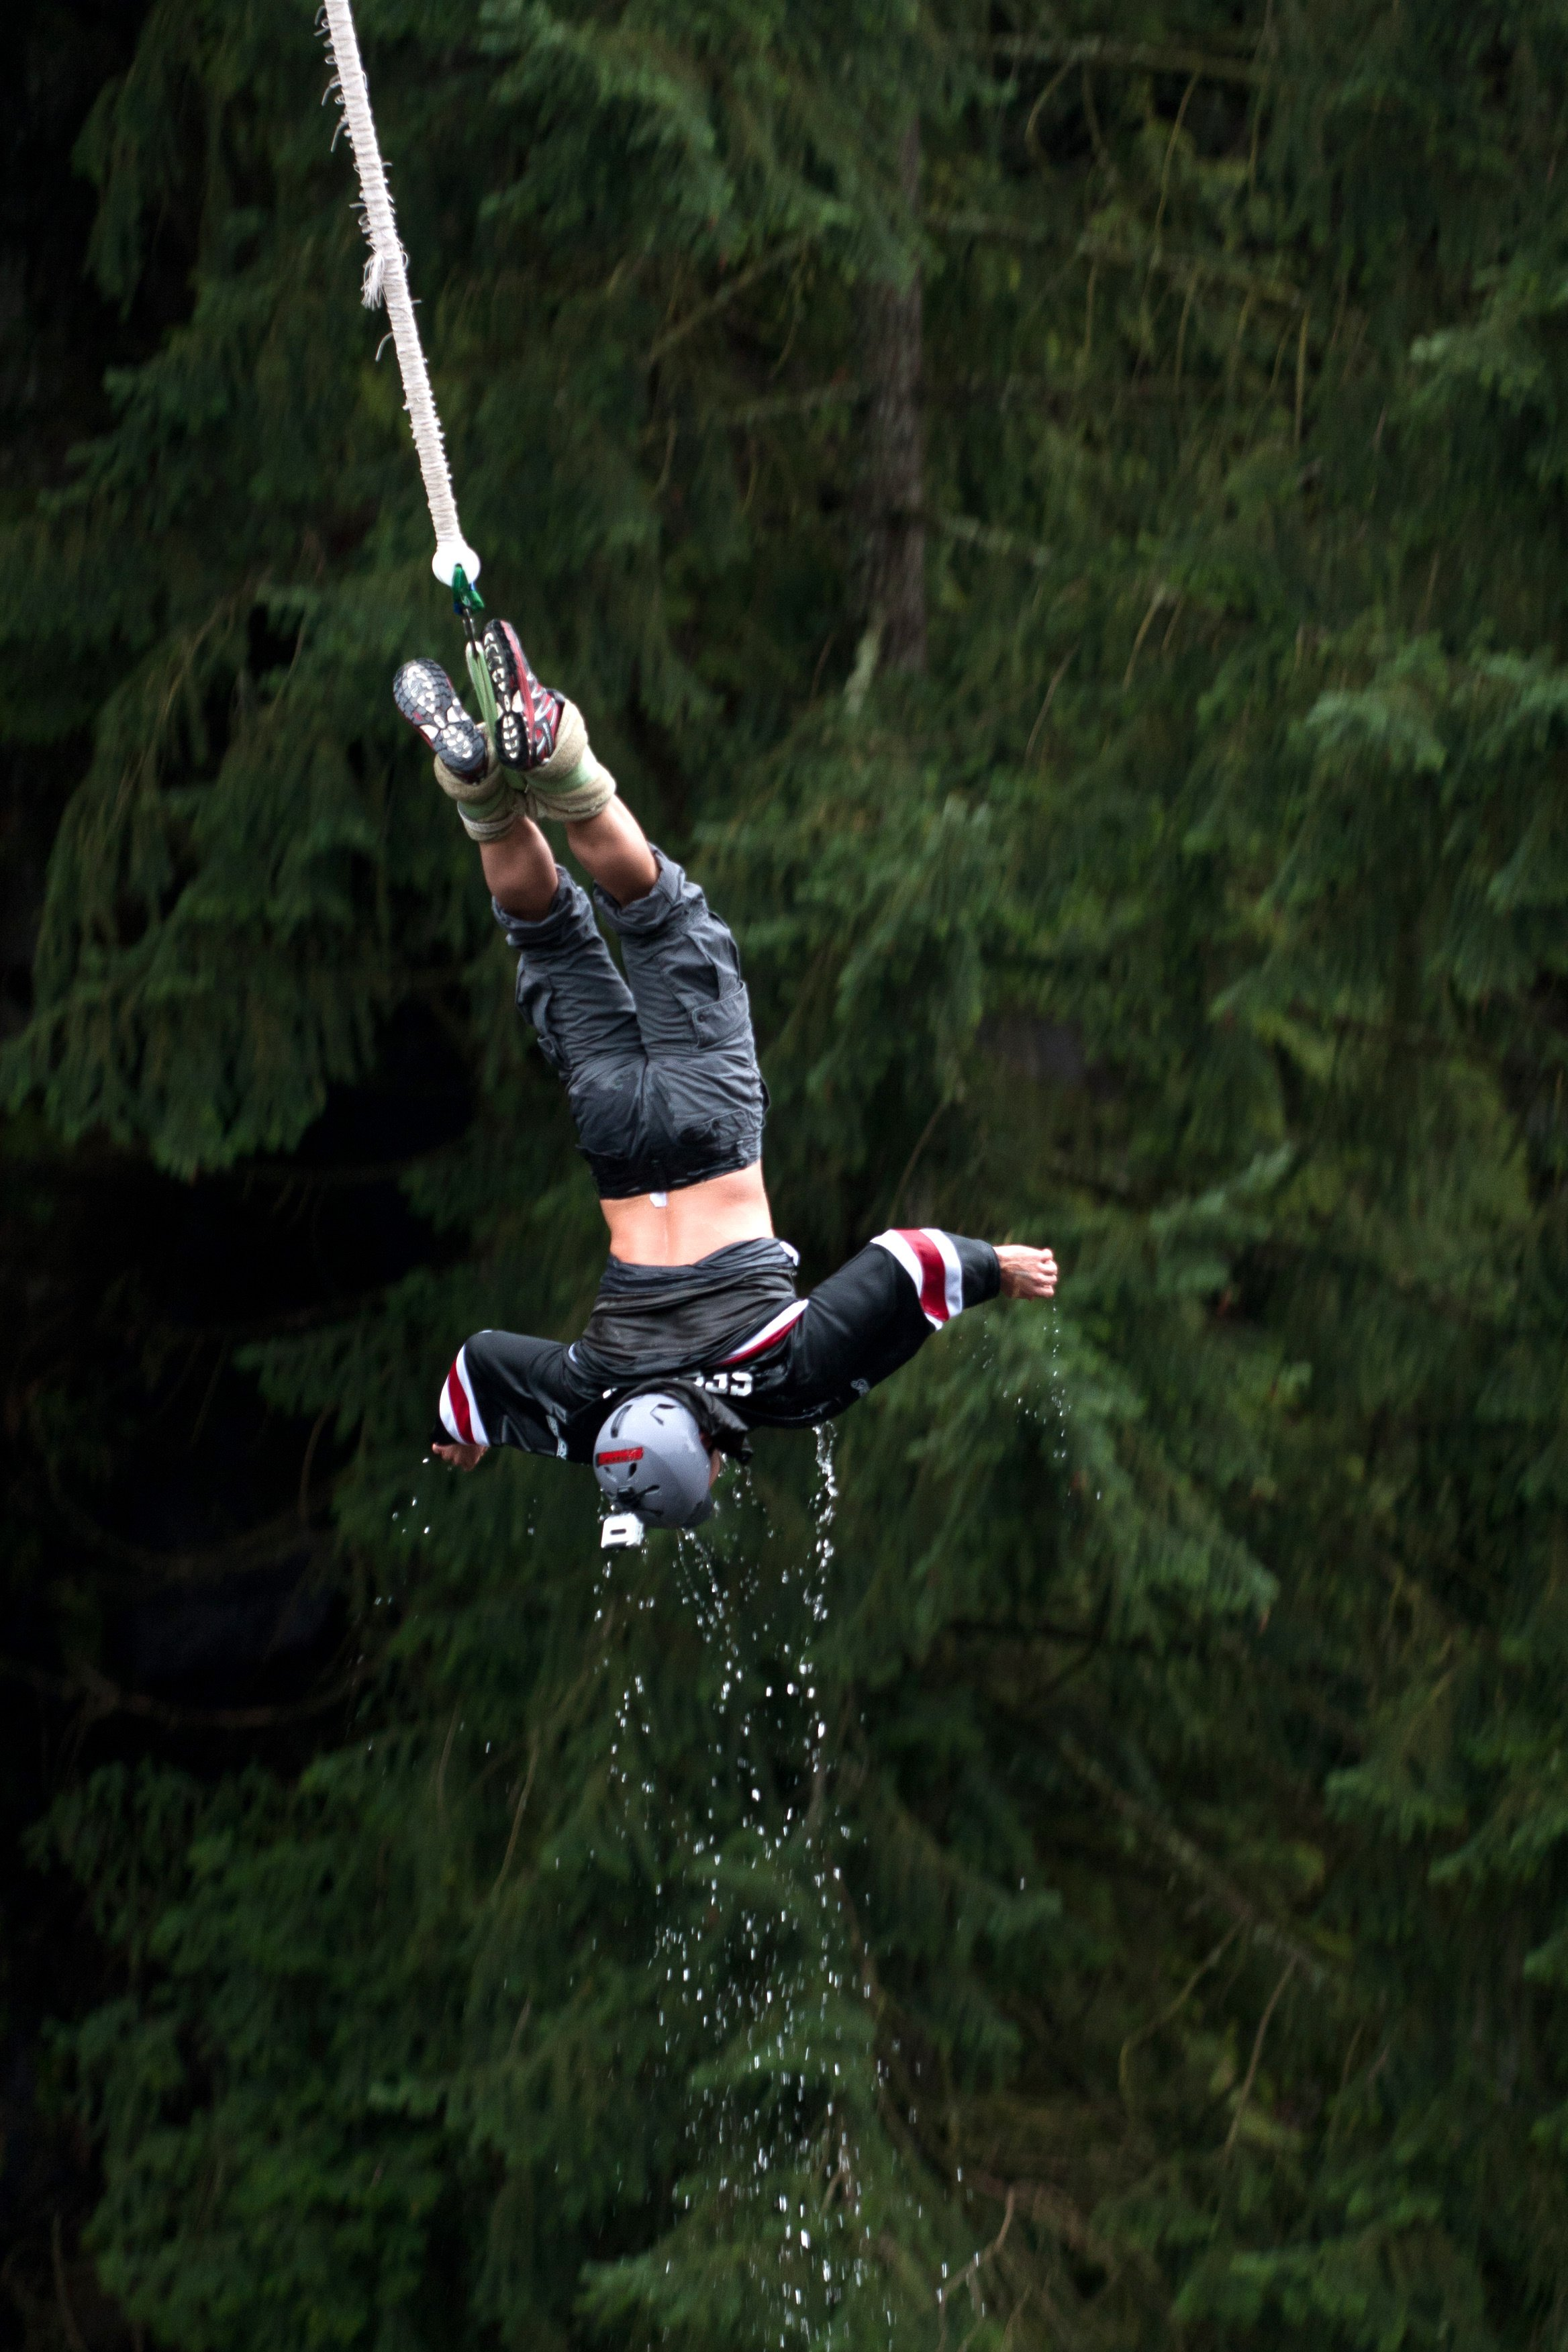 bungy Jumping on a rest day